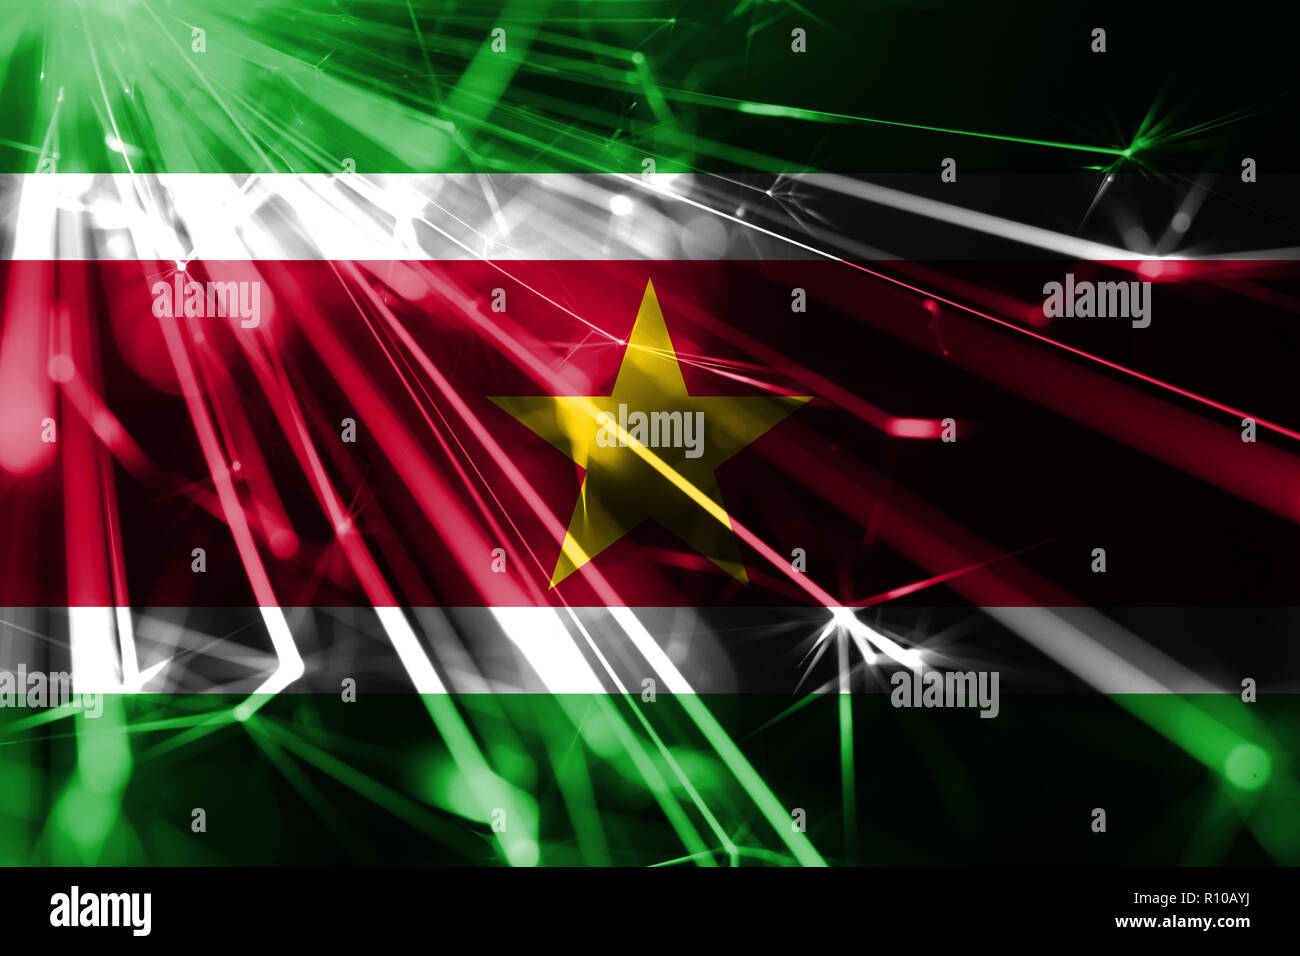 Suriname shining fireworks sparkling flag. New Year 2019 and Christmas futuristic shiny party concept flag - Stock Image